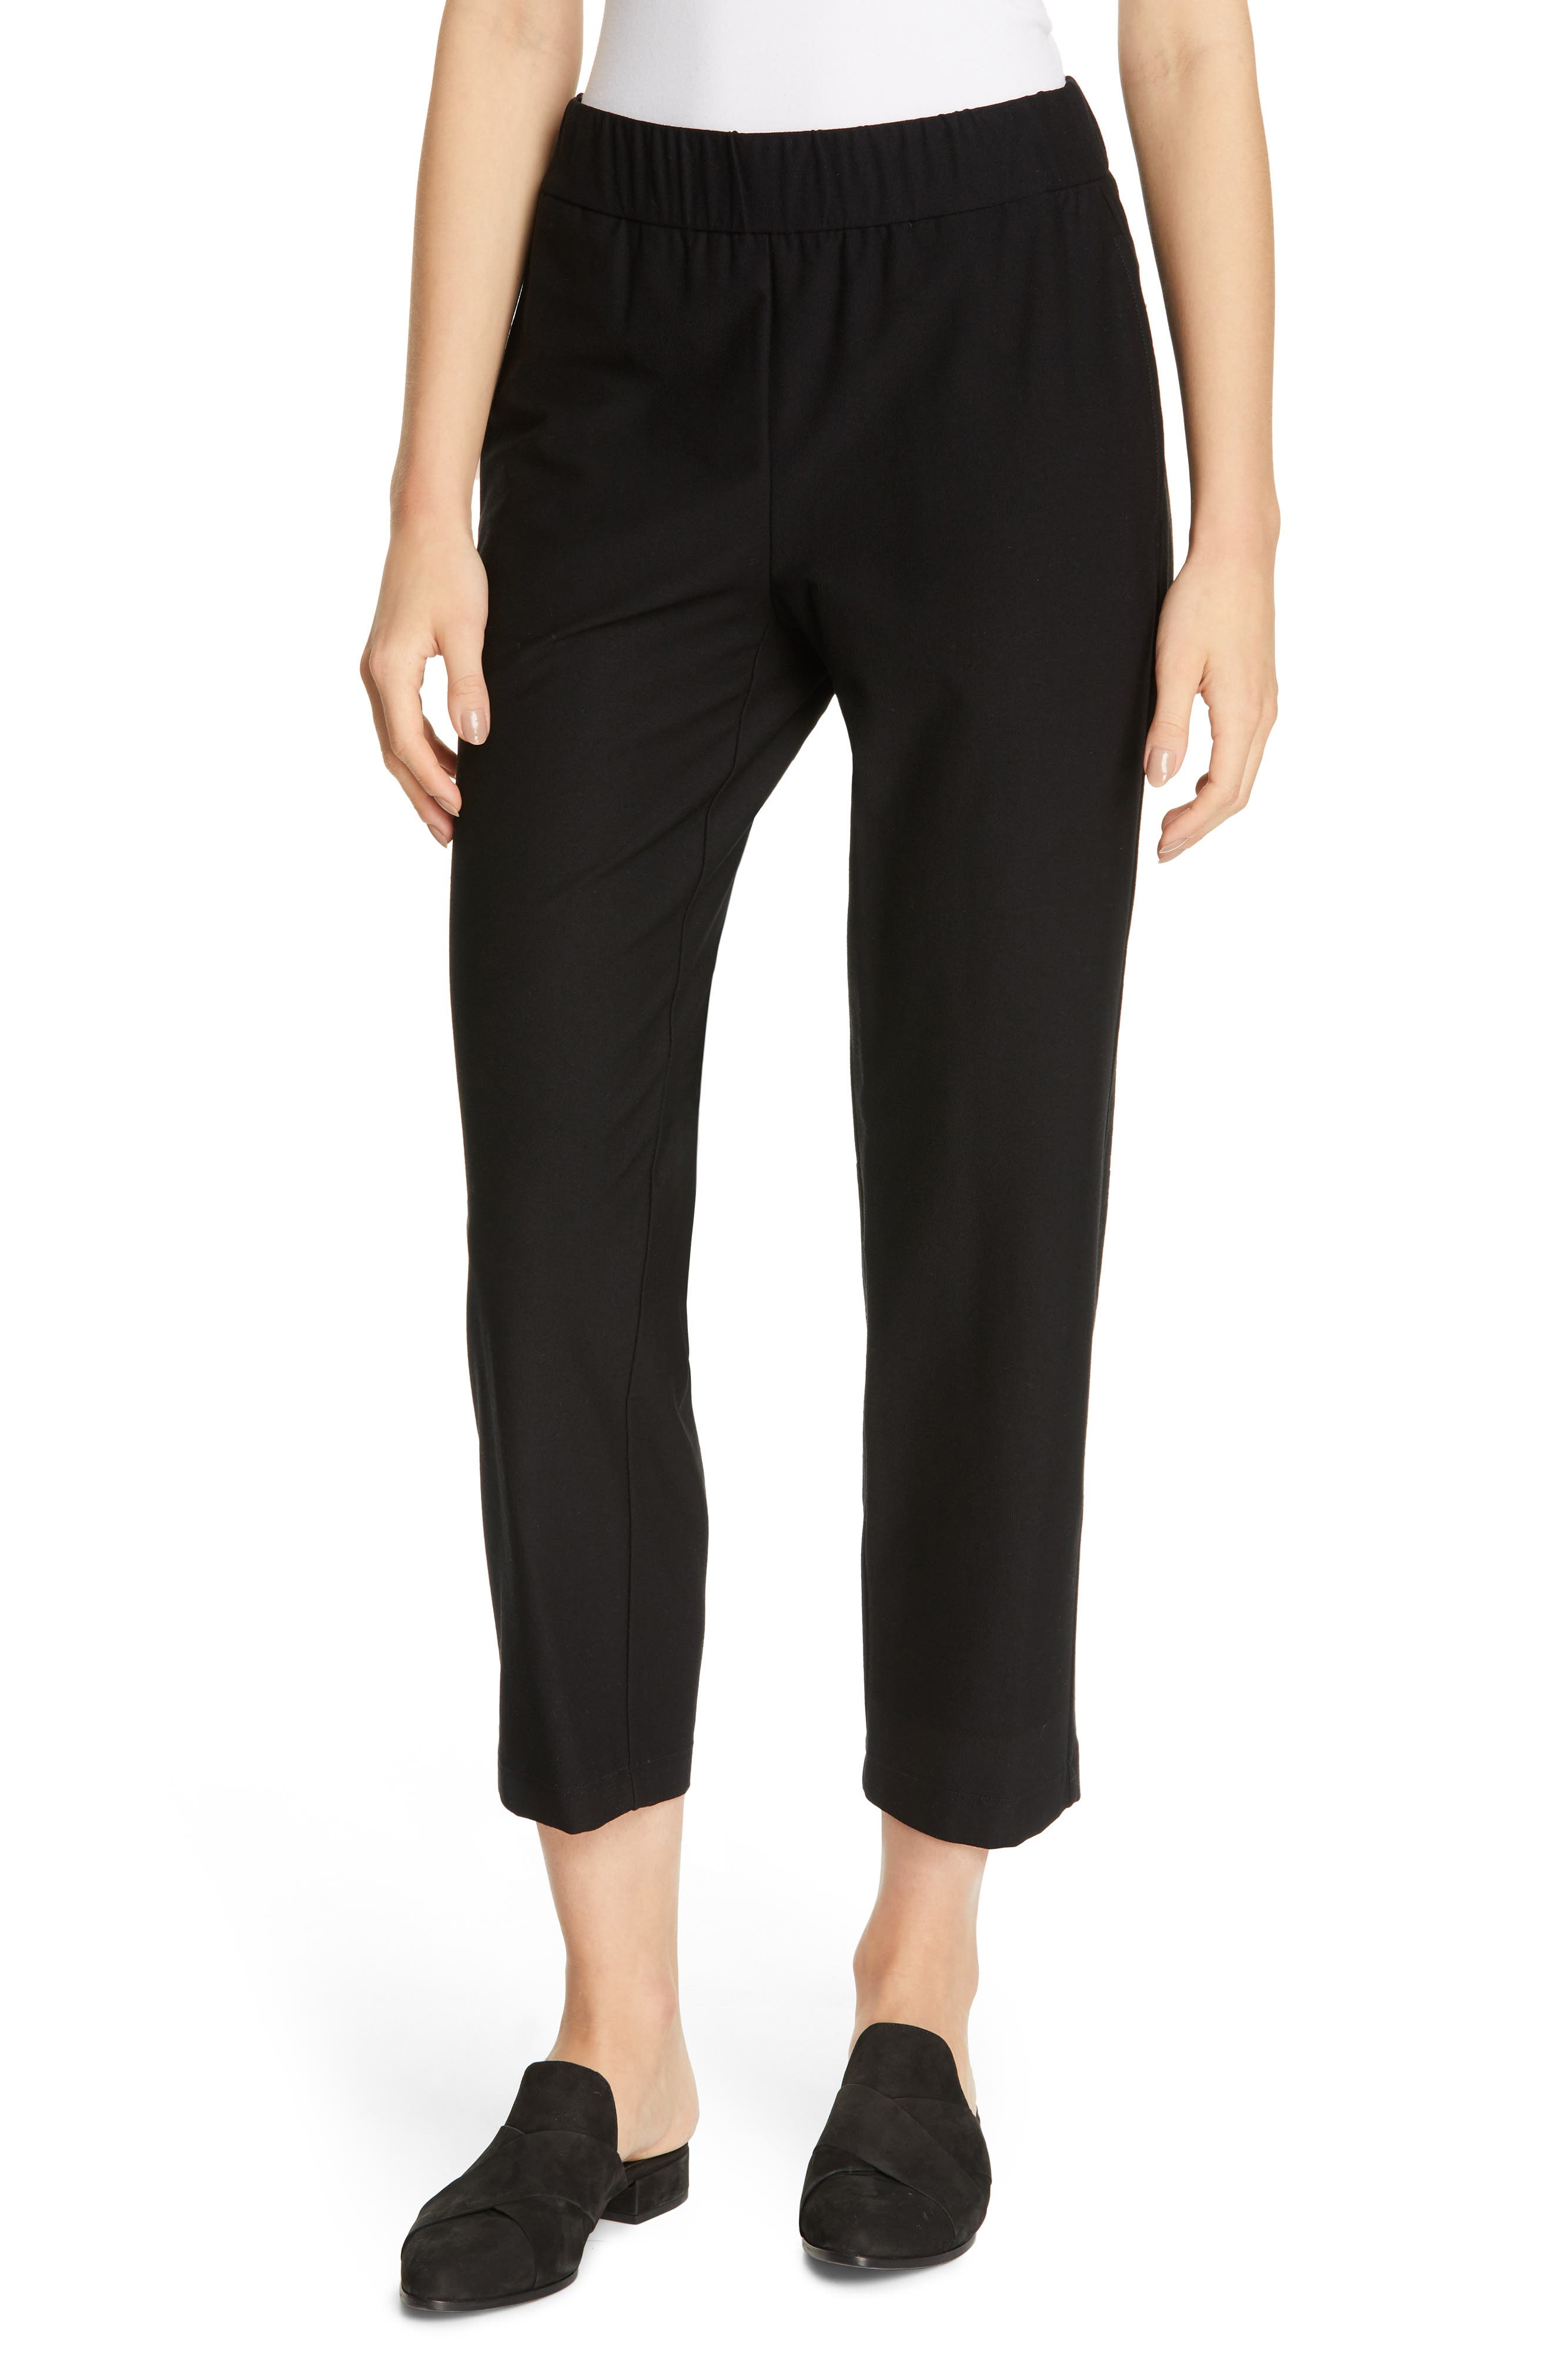 EILEEN FISHER, Tapered Ankle Pants, Main thumbnail 1, color, BLACK